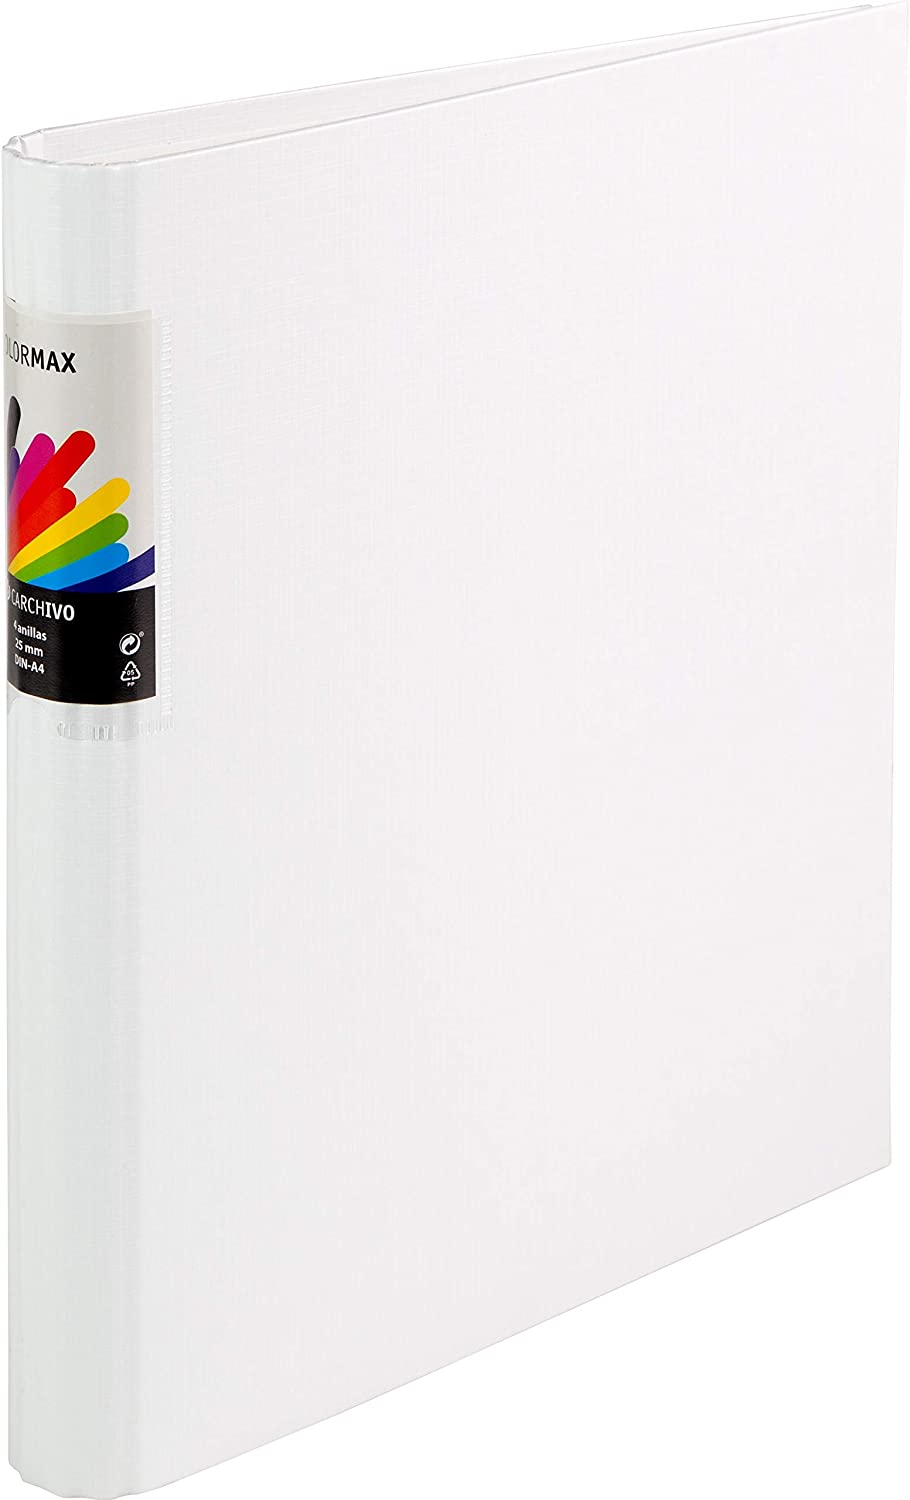 25% OFF Colormax Ring Very popular Binder Cardboard Lined A4 Mixed mm 25 4 an White